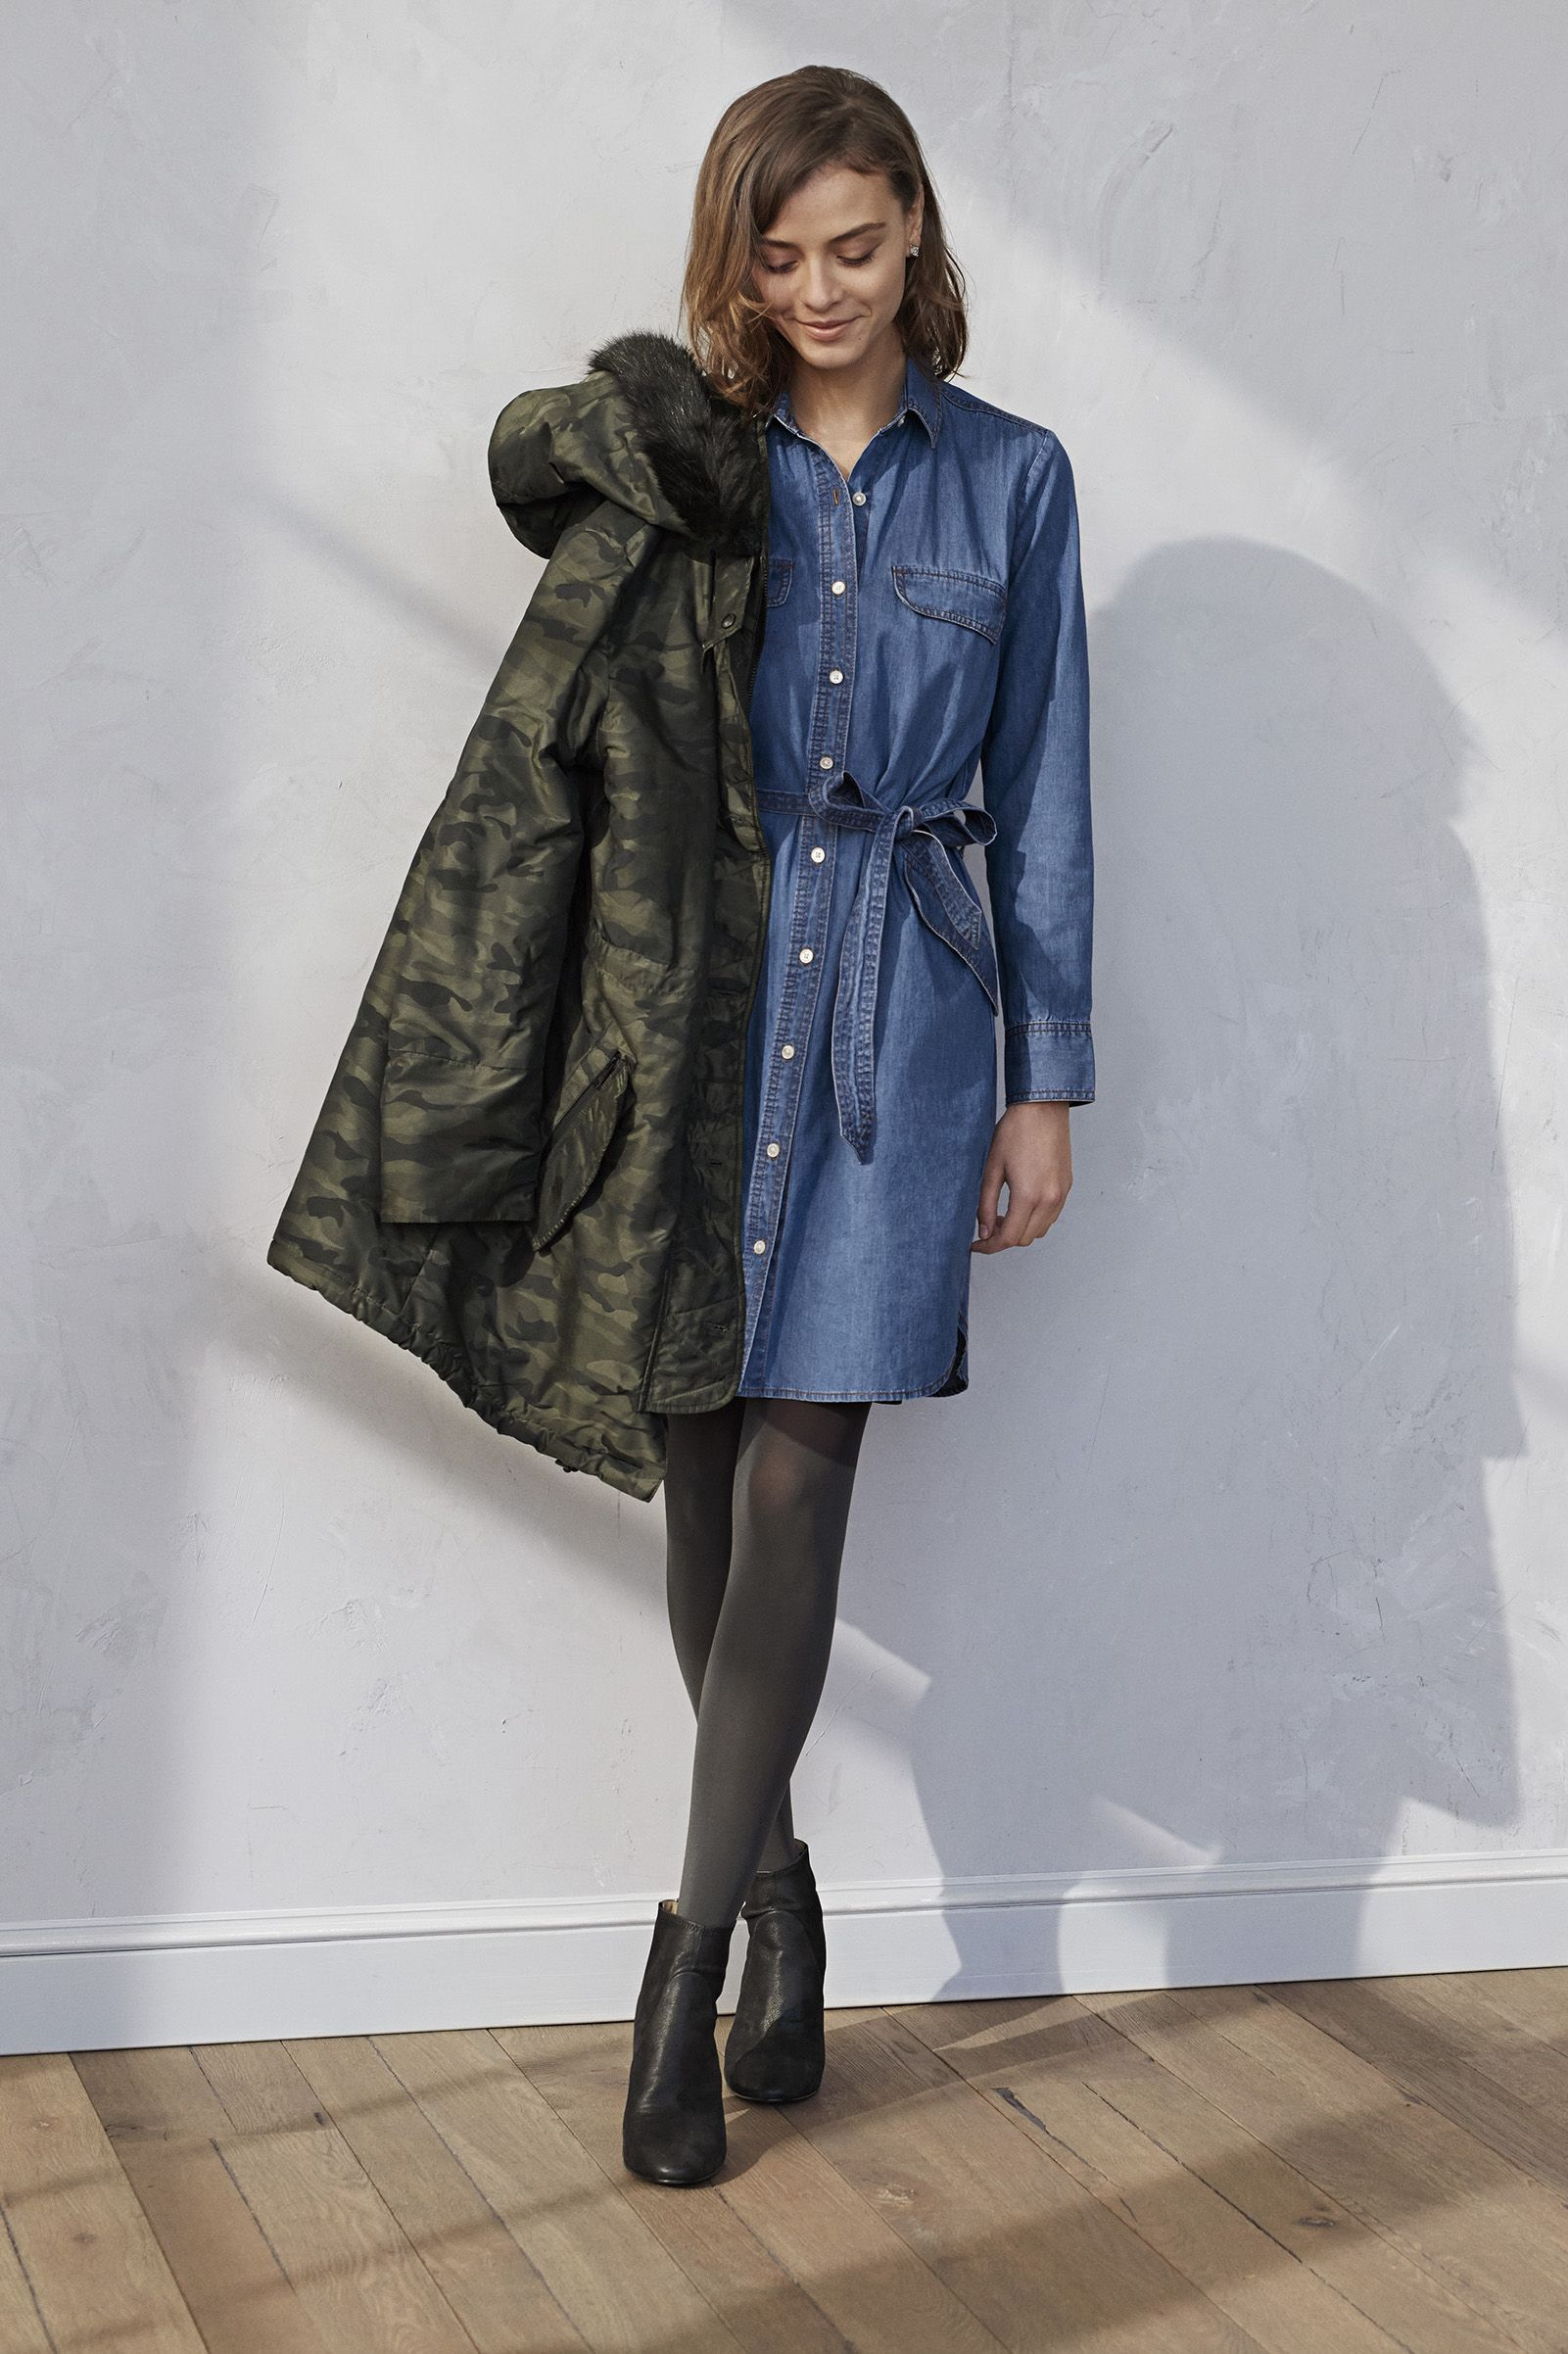 It S Versatile And Lightweight Making Great For Layering This Winter Season Banana Republic A Denim Shirtdress